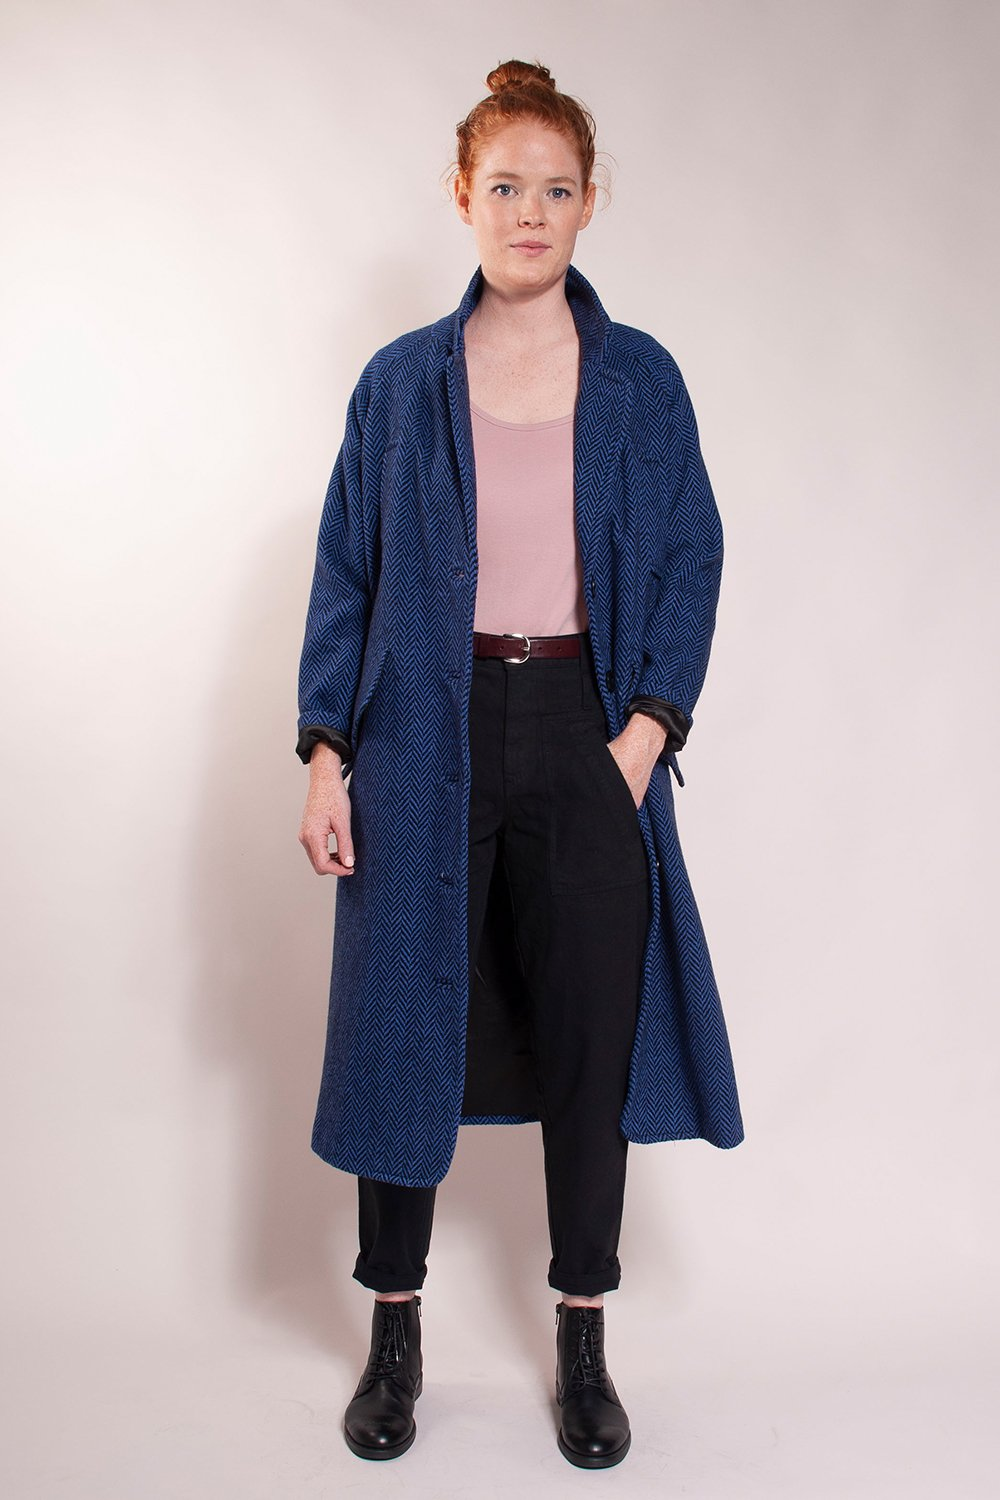 50% Wool/ 50% Polyester -- Fully lined.  Long overcoat, loose fit, welt chest handwarmer pockets and hidden button hip pockets. Great mid-weight coat!